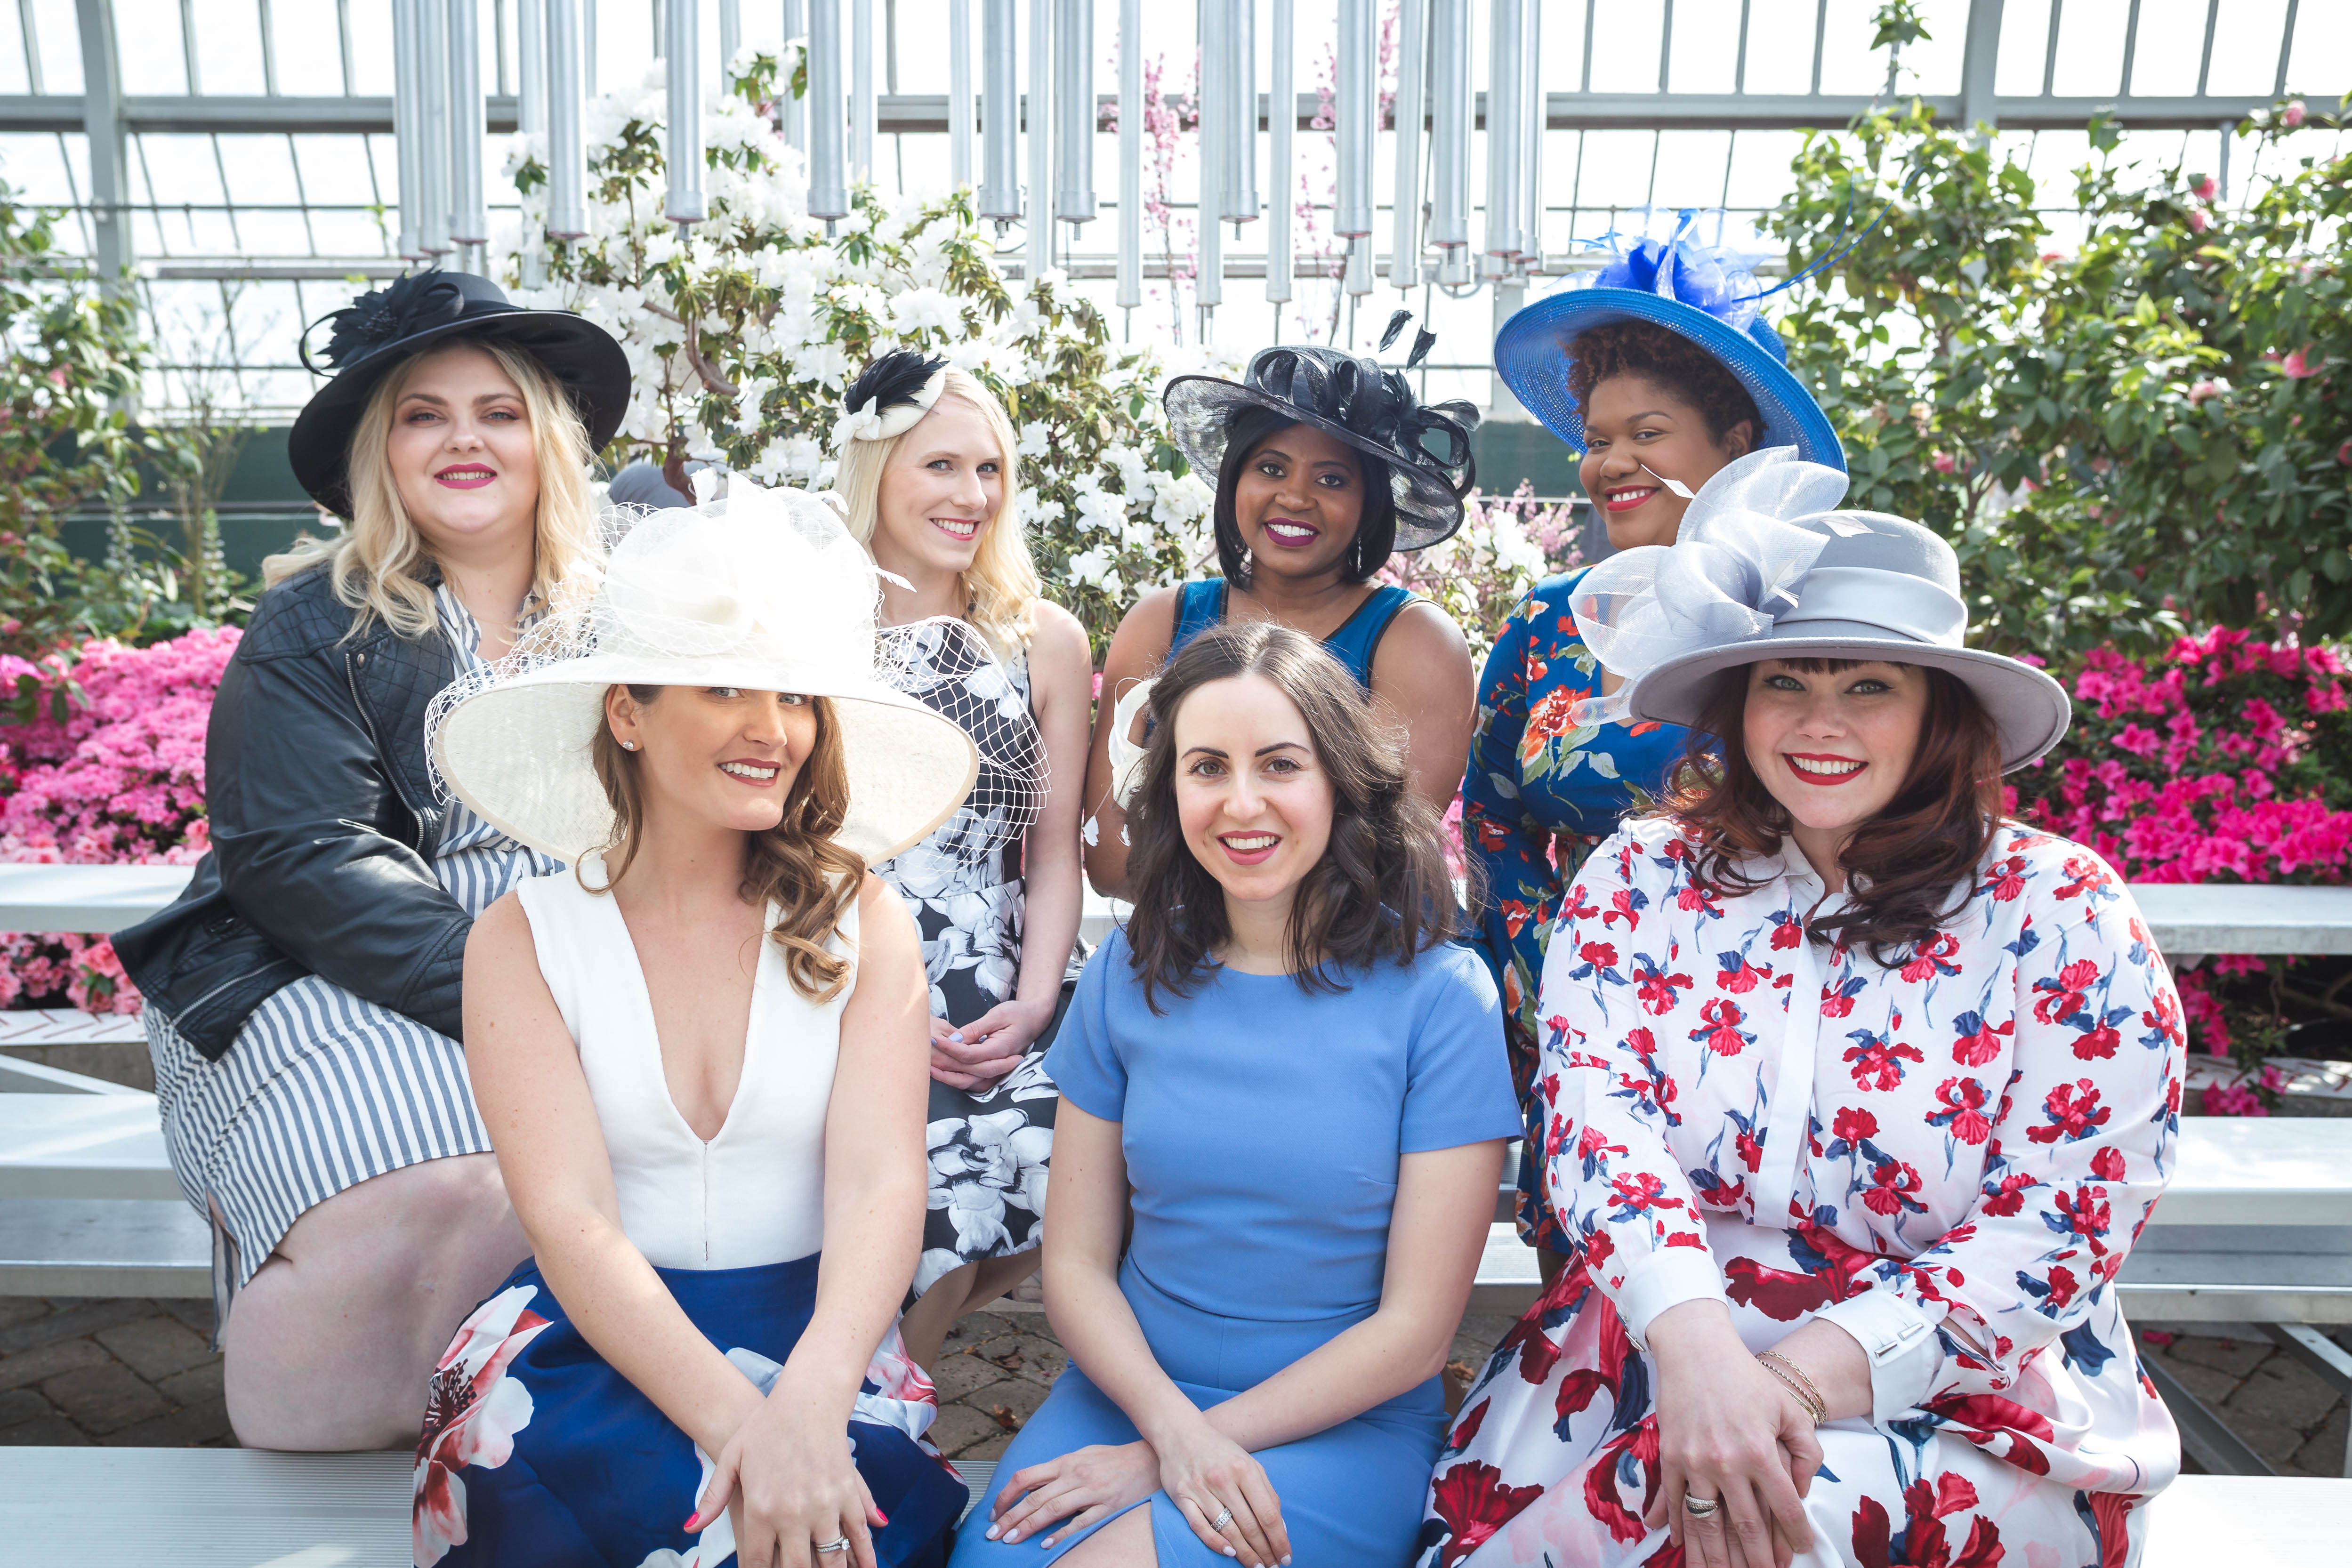 Chicago bloggers in spring dresses and derby hats for Mother's Day Fundraiser, Chicago Event